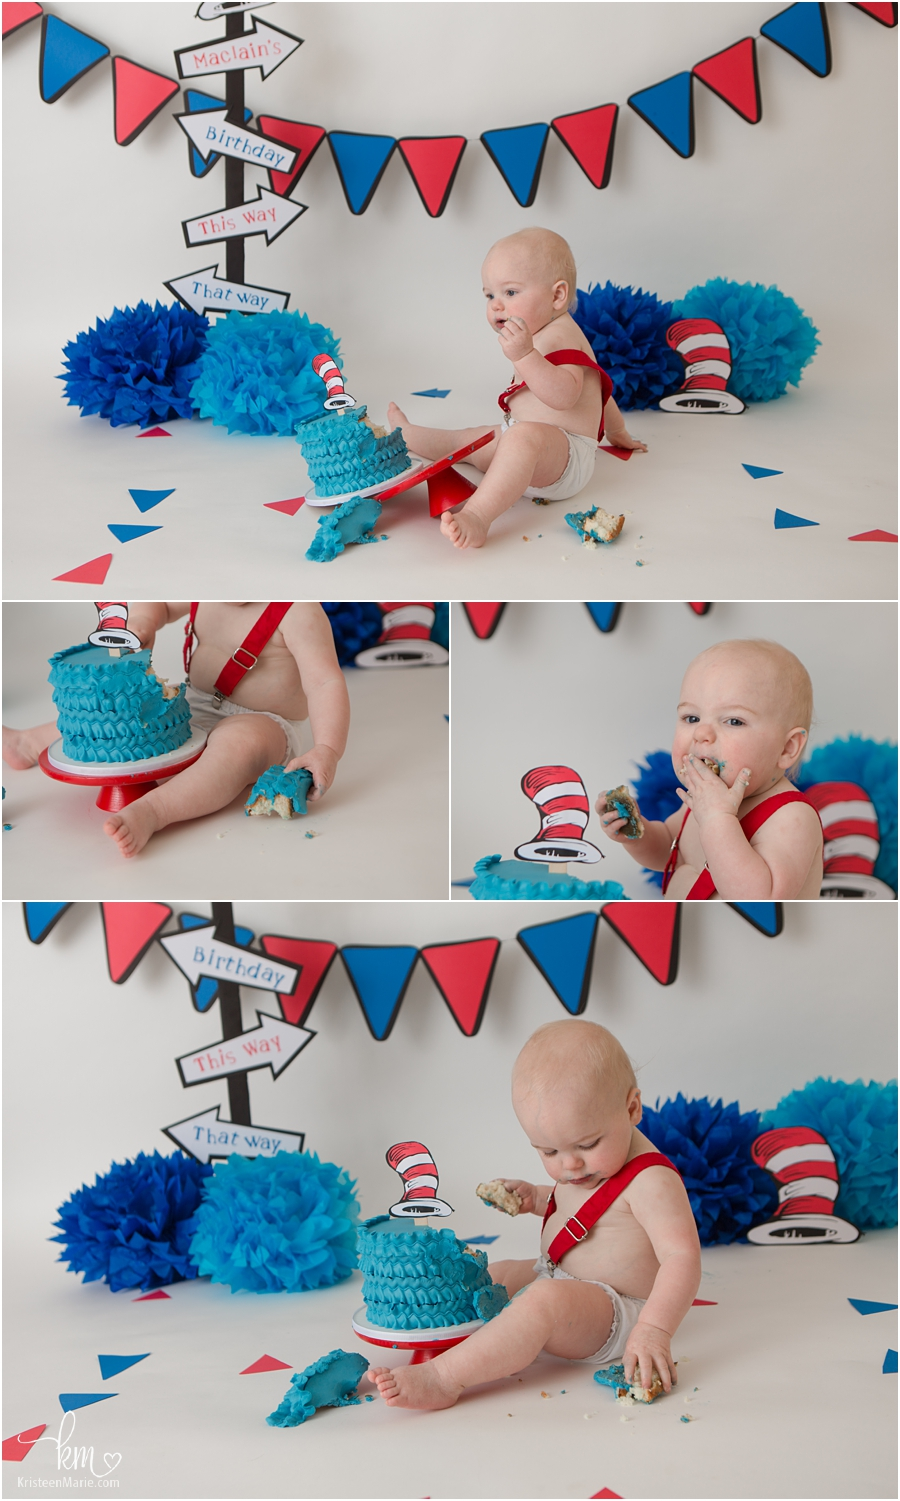 Cat in the hat first birthday cake smash session